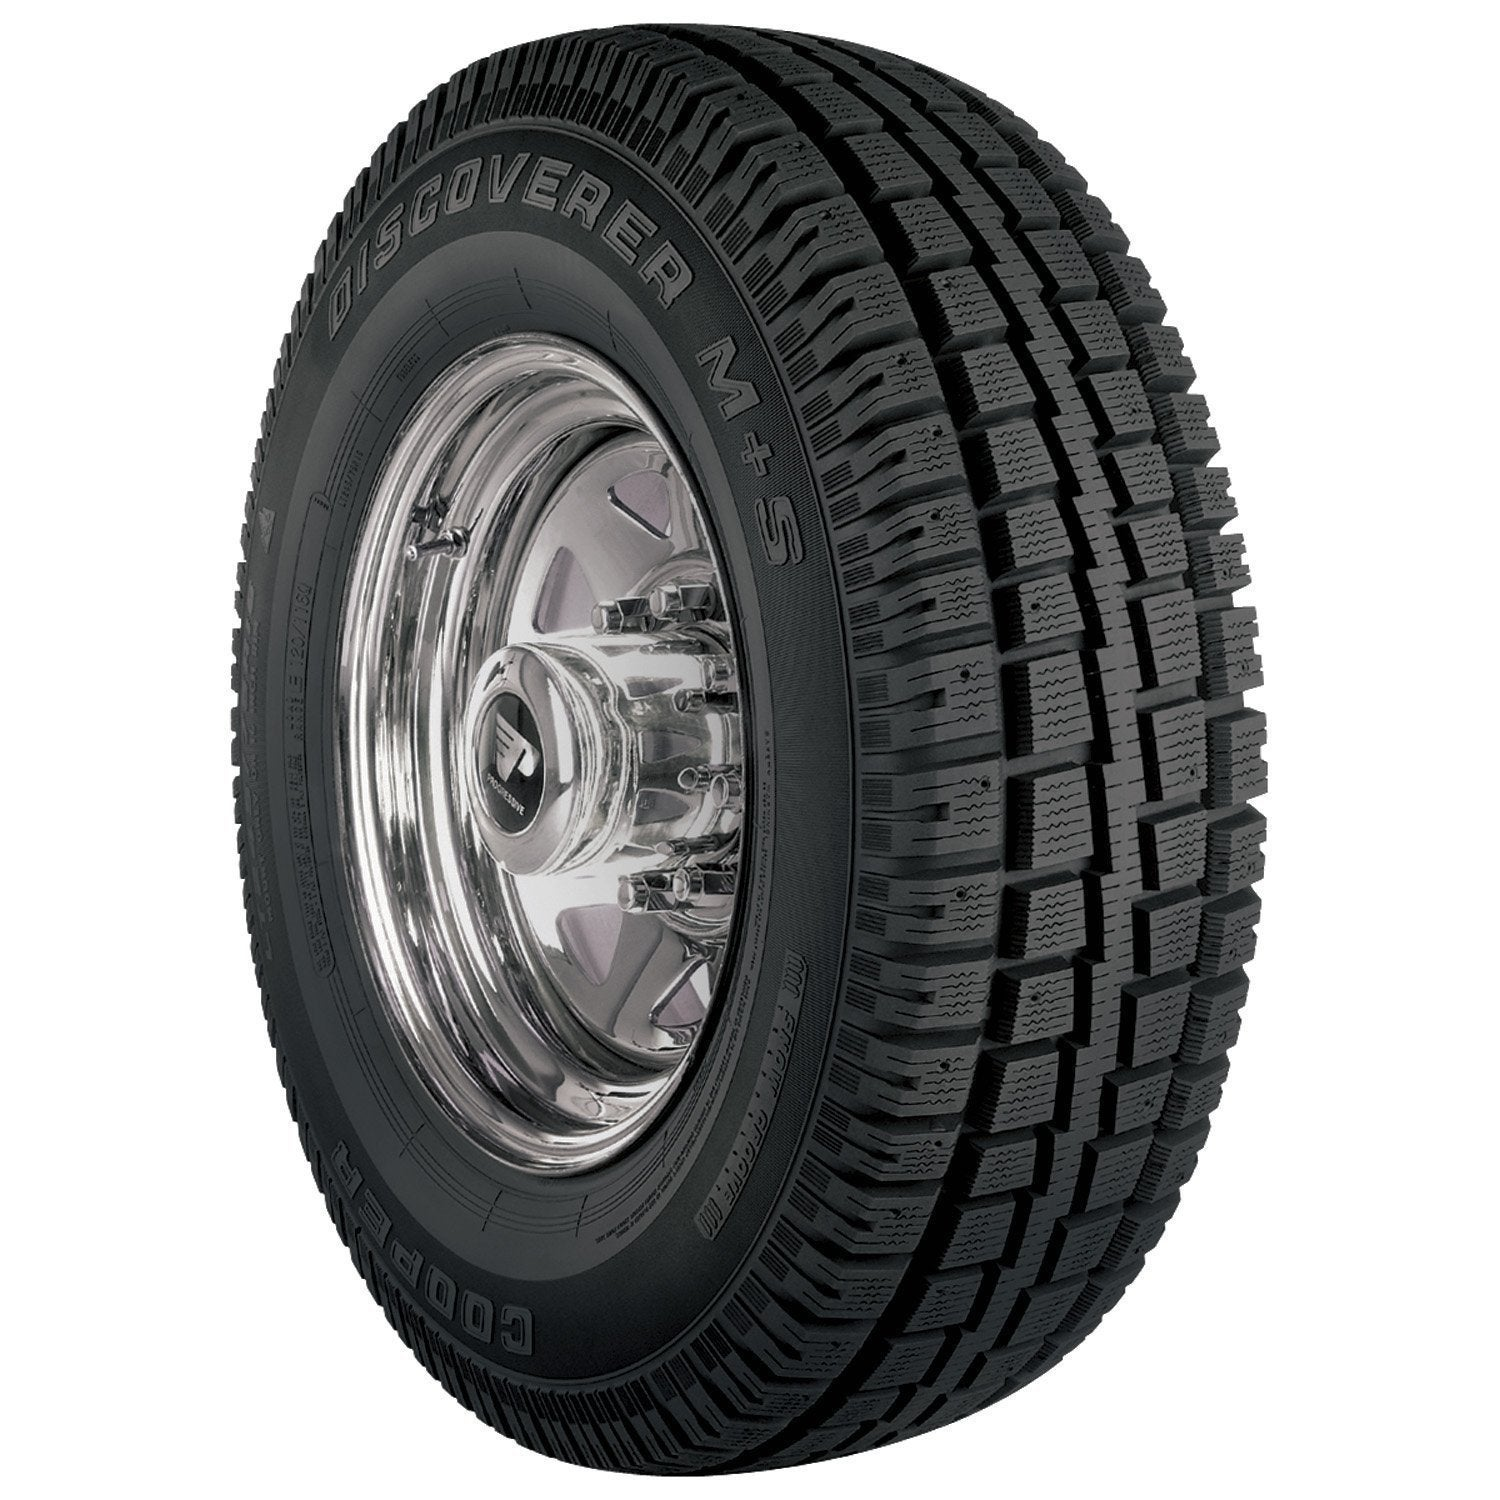 COOPER Discoverer M+S Winter Tire - 255/65R17 110S (Black)